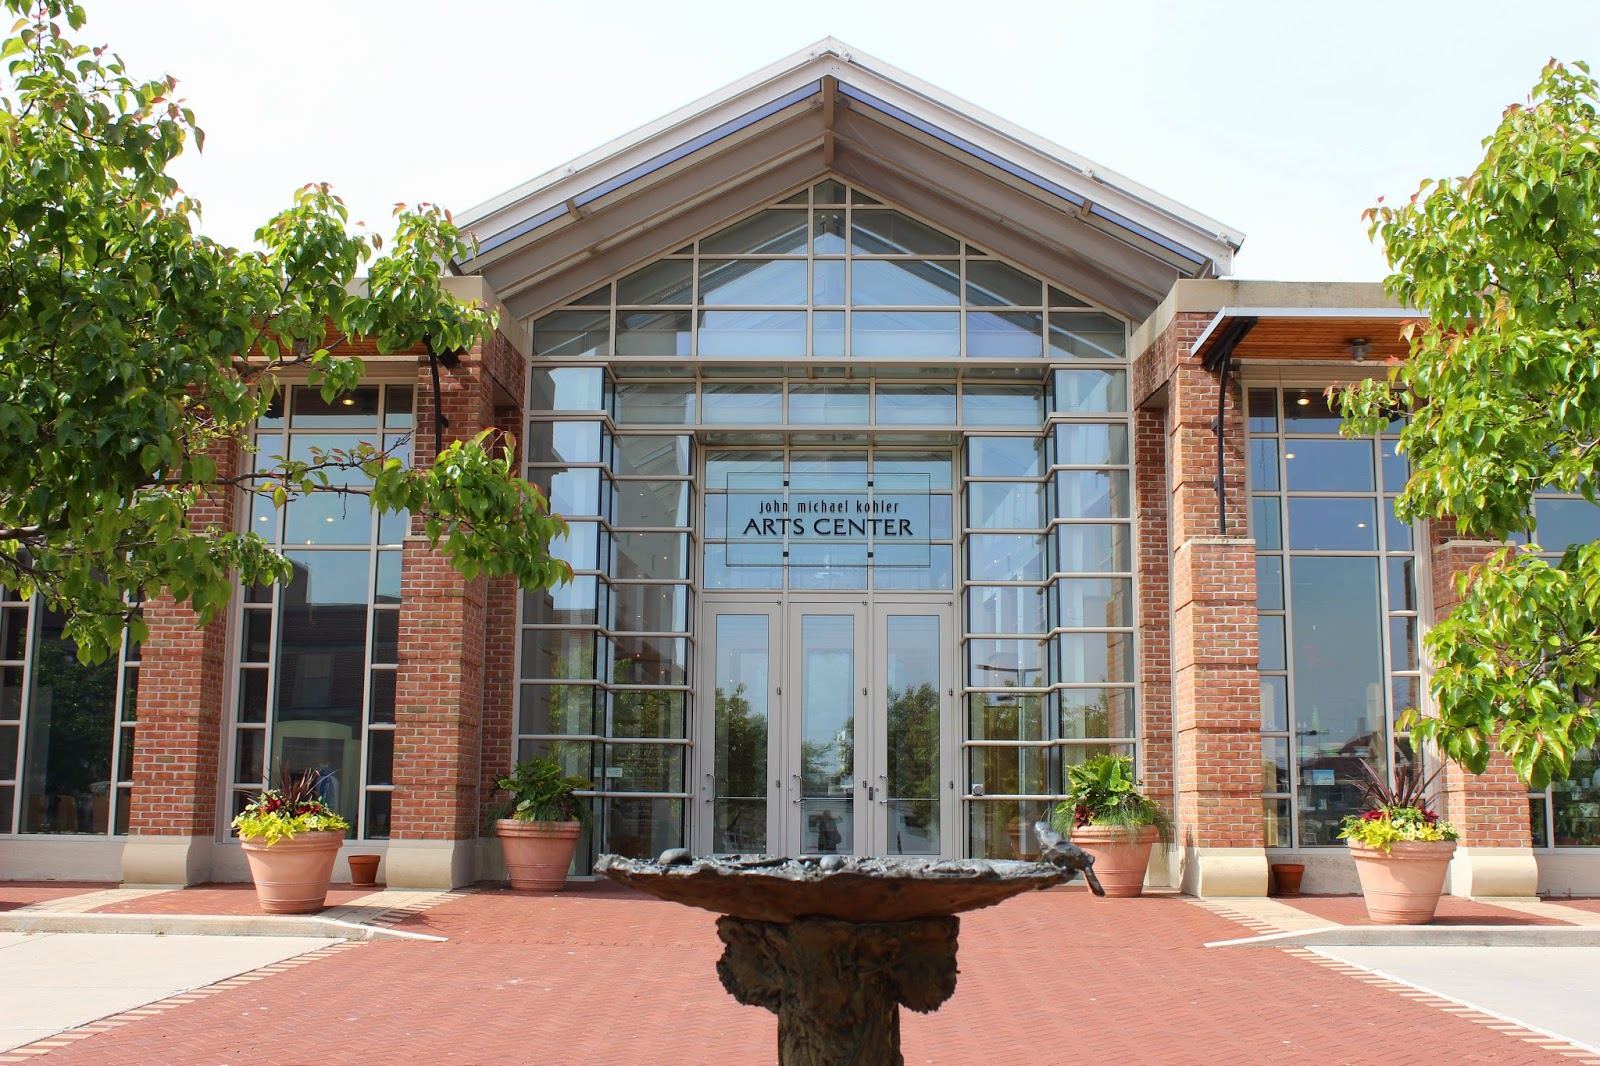 art center visit The shemer art center is wheelchair accessible, which means all guests can enjoy our classes, workshops, lectures, exhibitions and events please call (602) 262-4727 if you have any questions about accessibility.